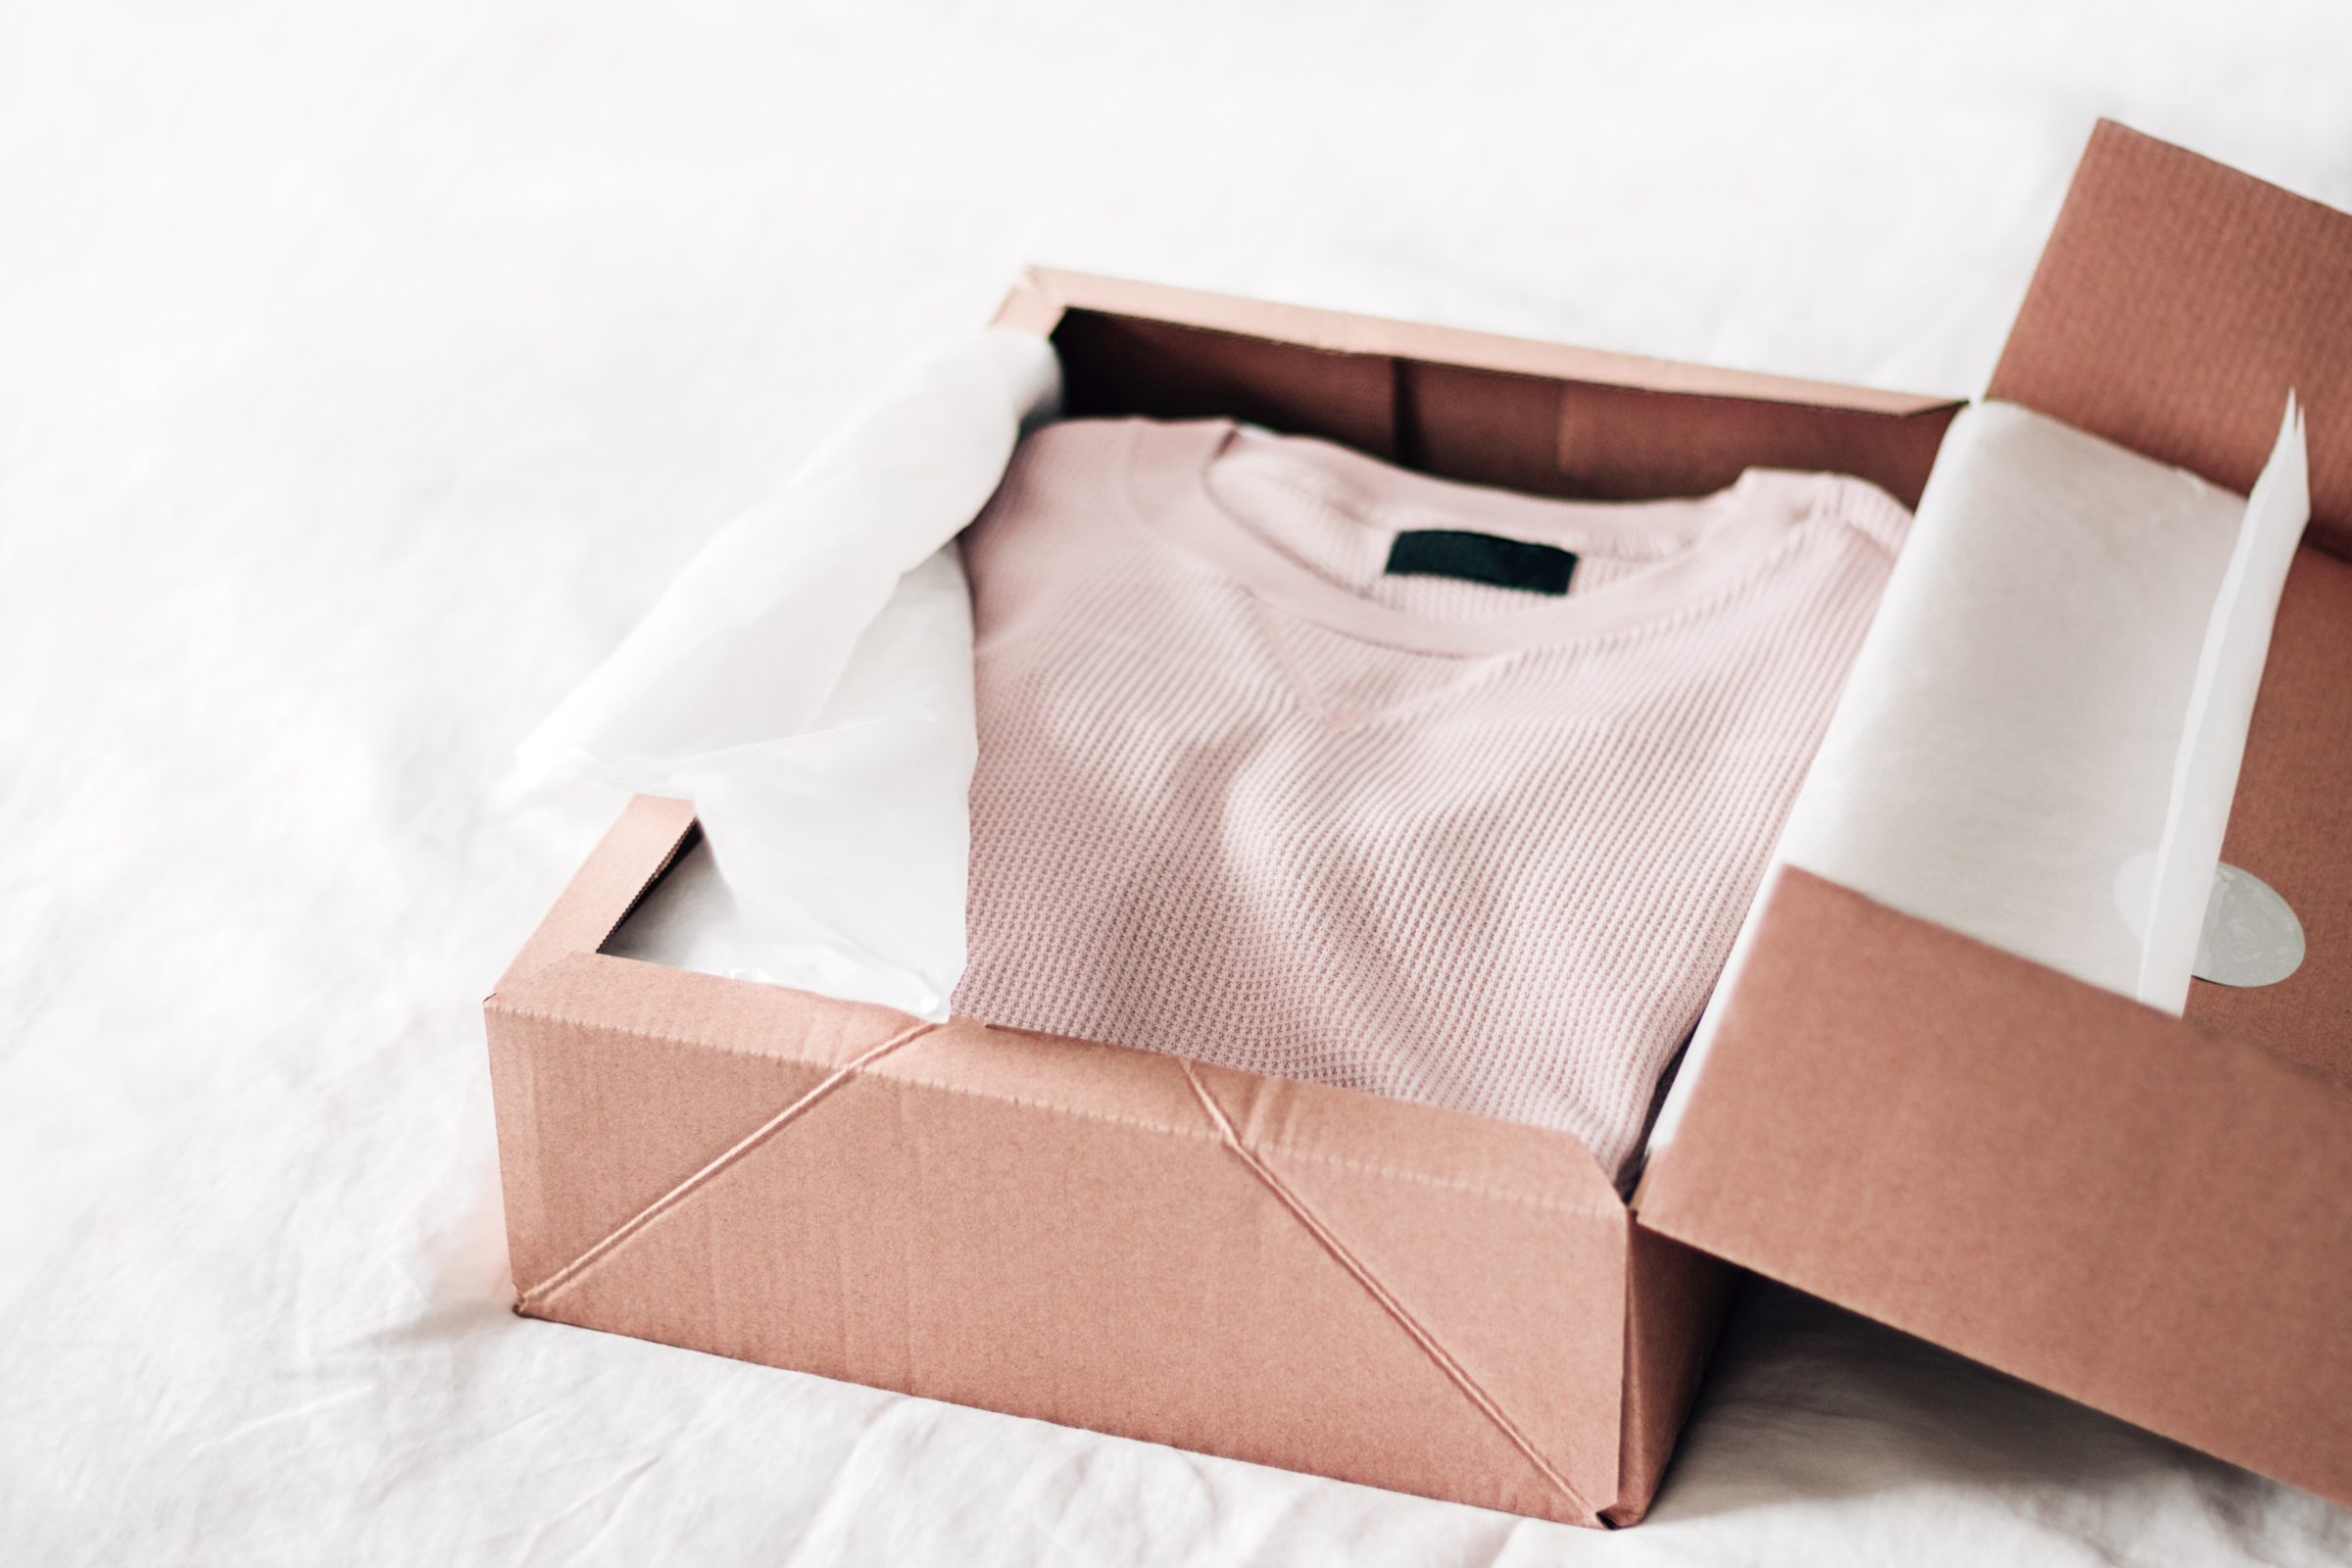 opening box pink t shirt online shopping 9PFLHFC